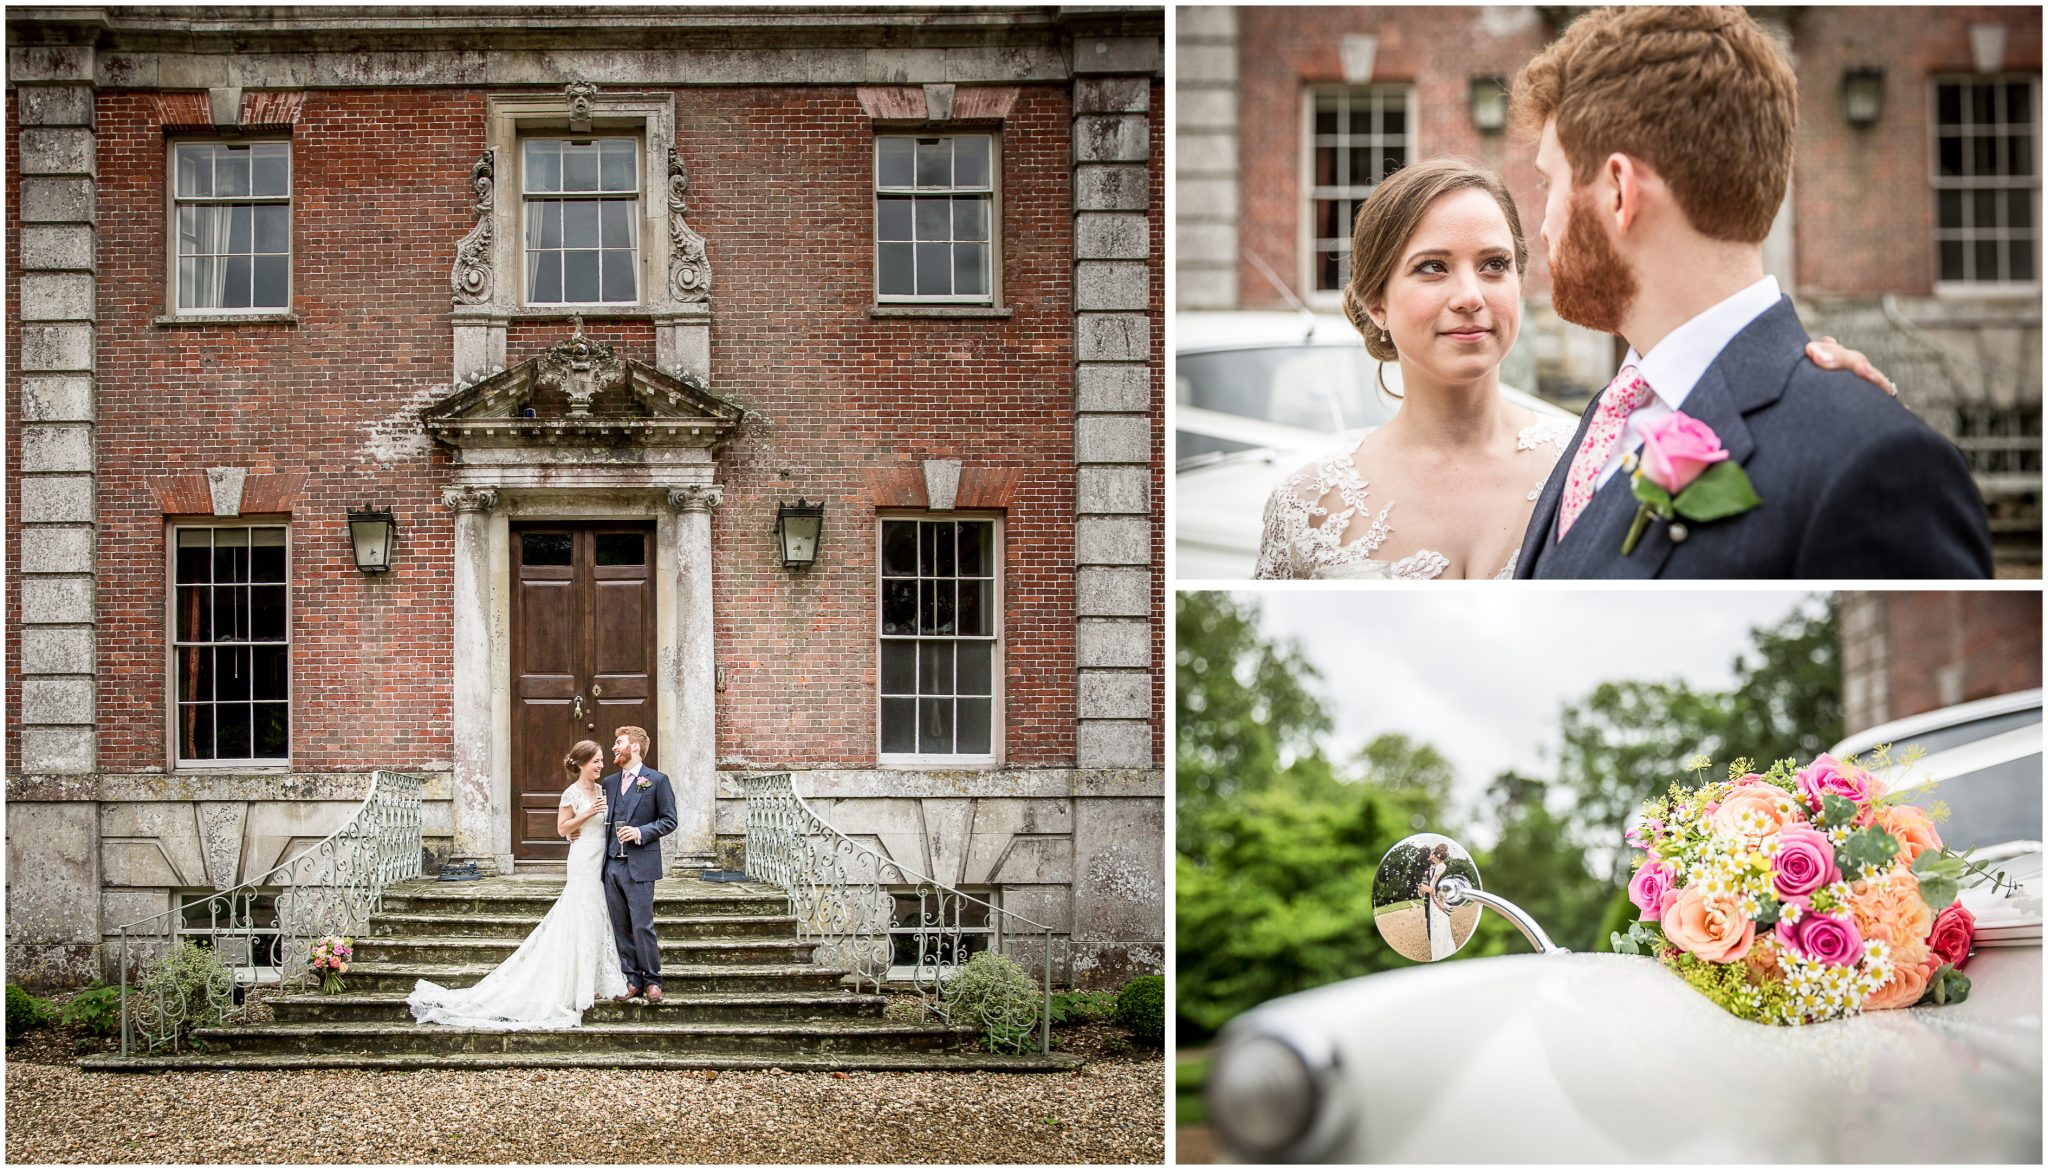 Bride and groom outside manor house with wedding car